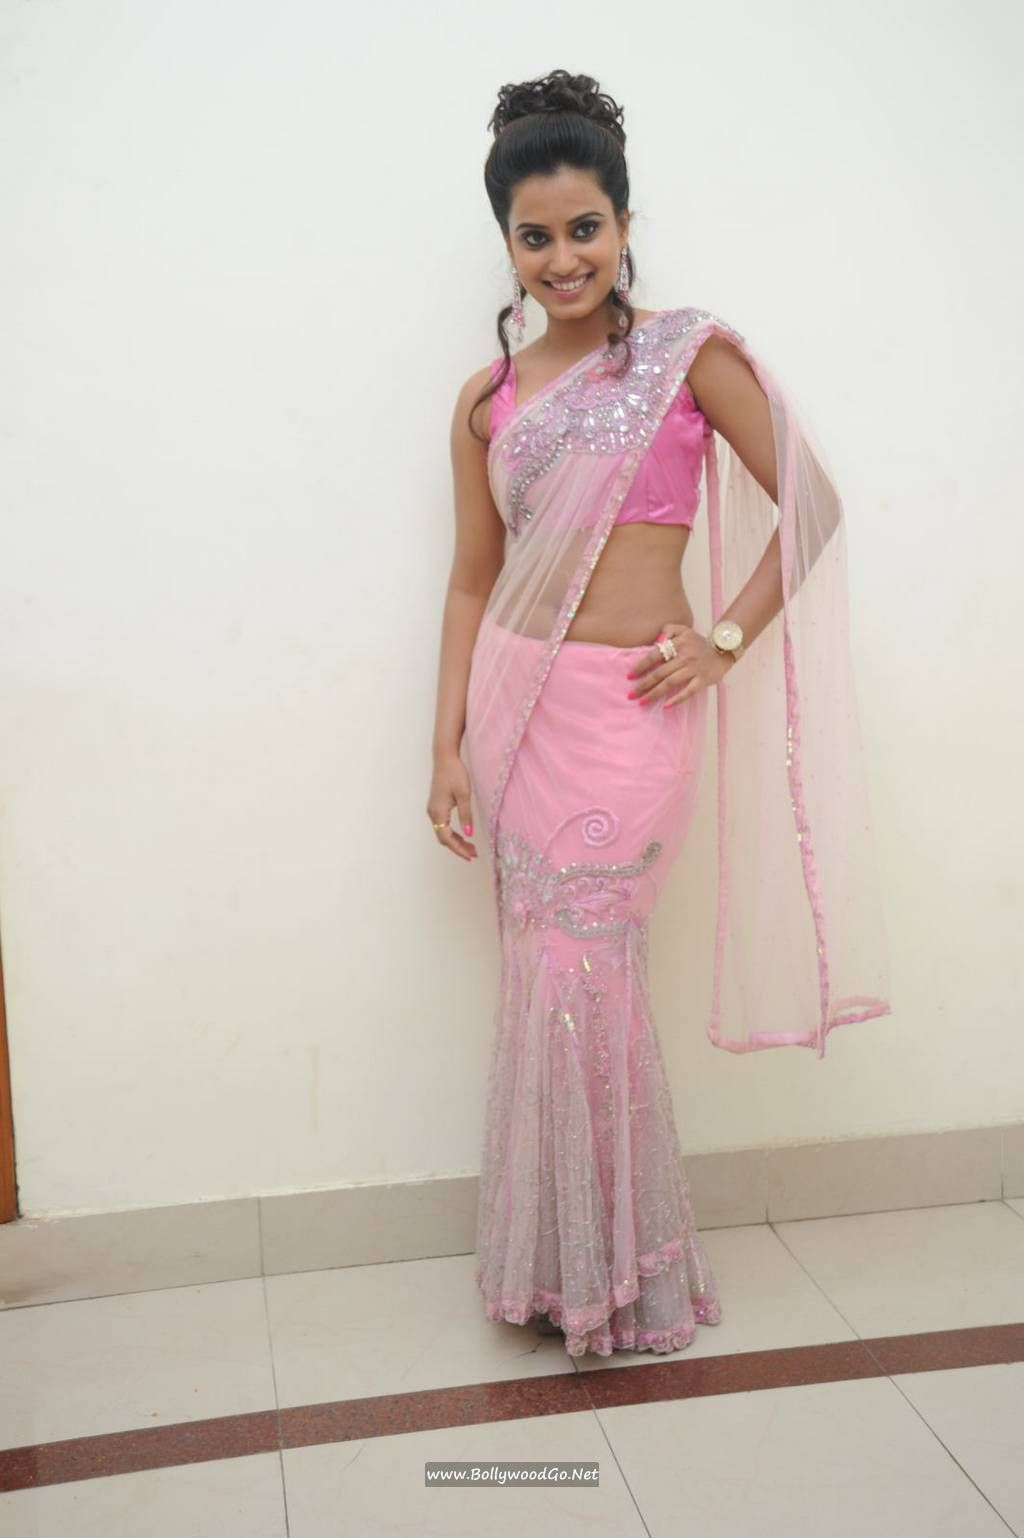 Actress Dimple at Romance Audio Launch Event AckwdXcI